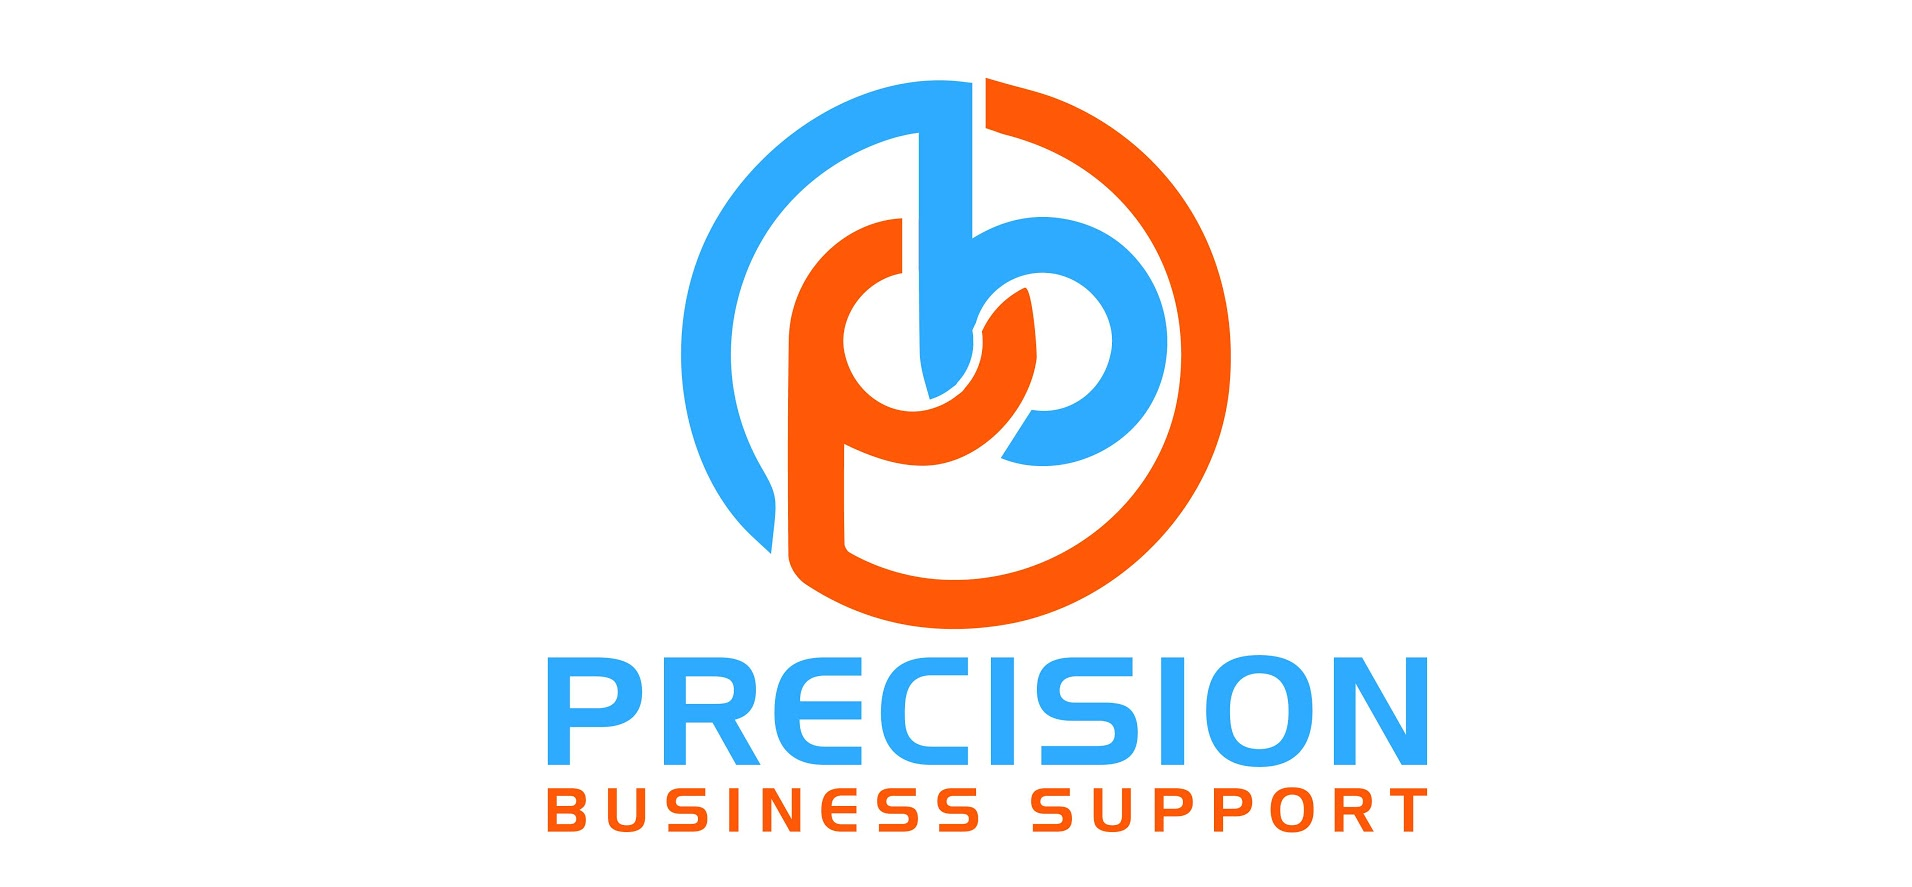 Precision Business Support